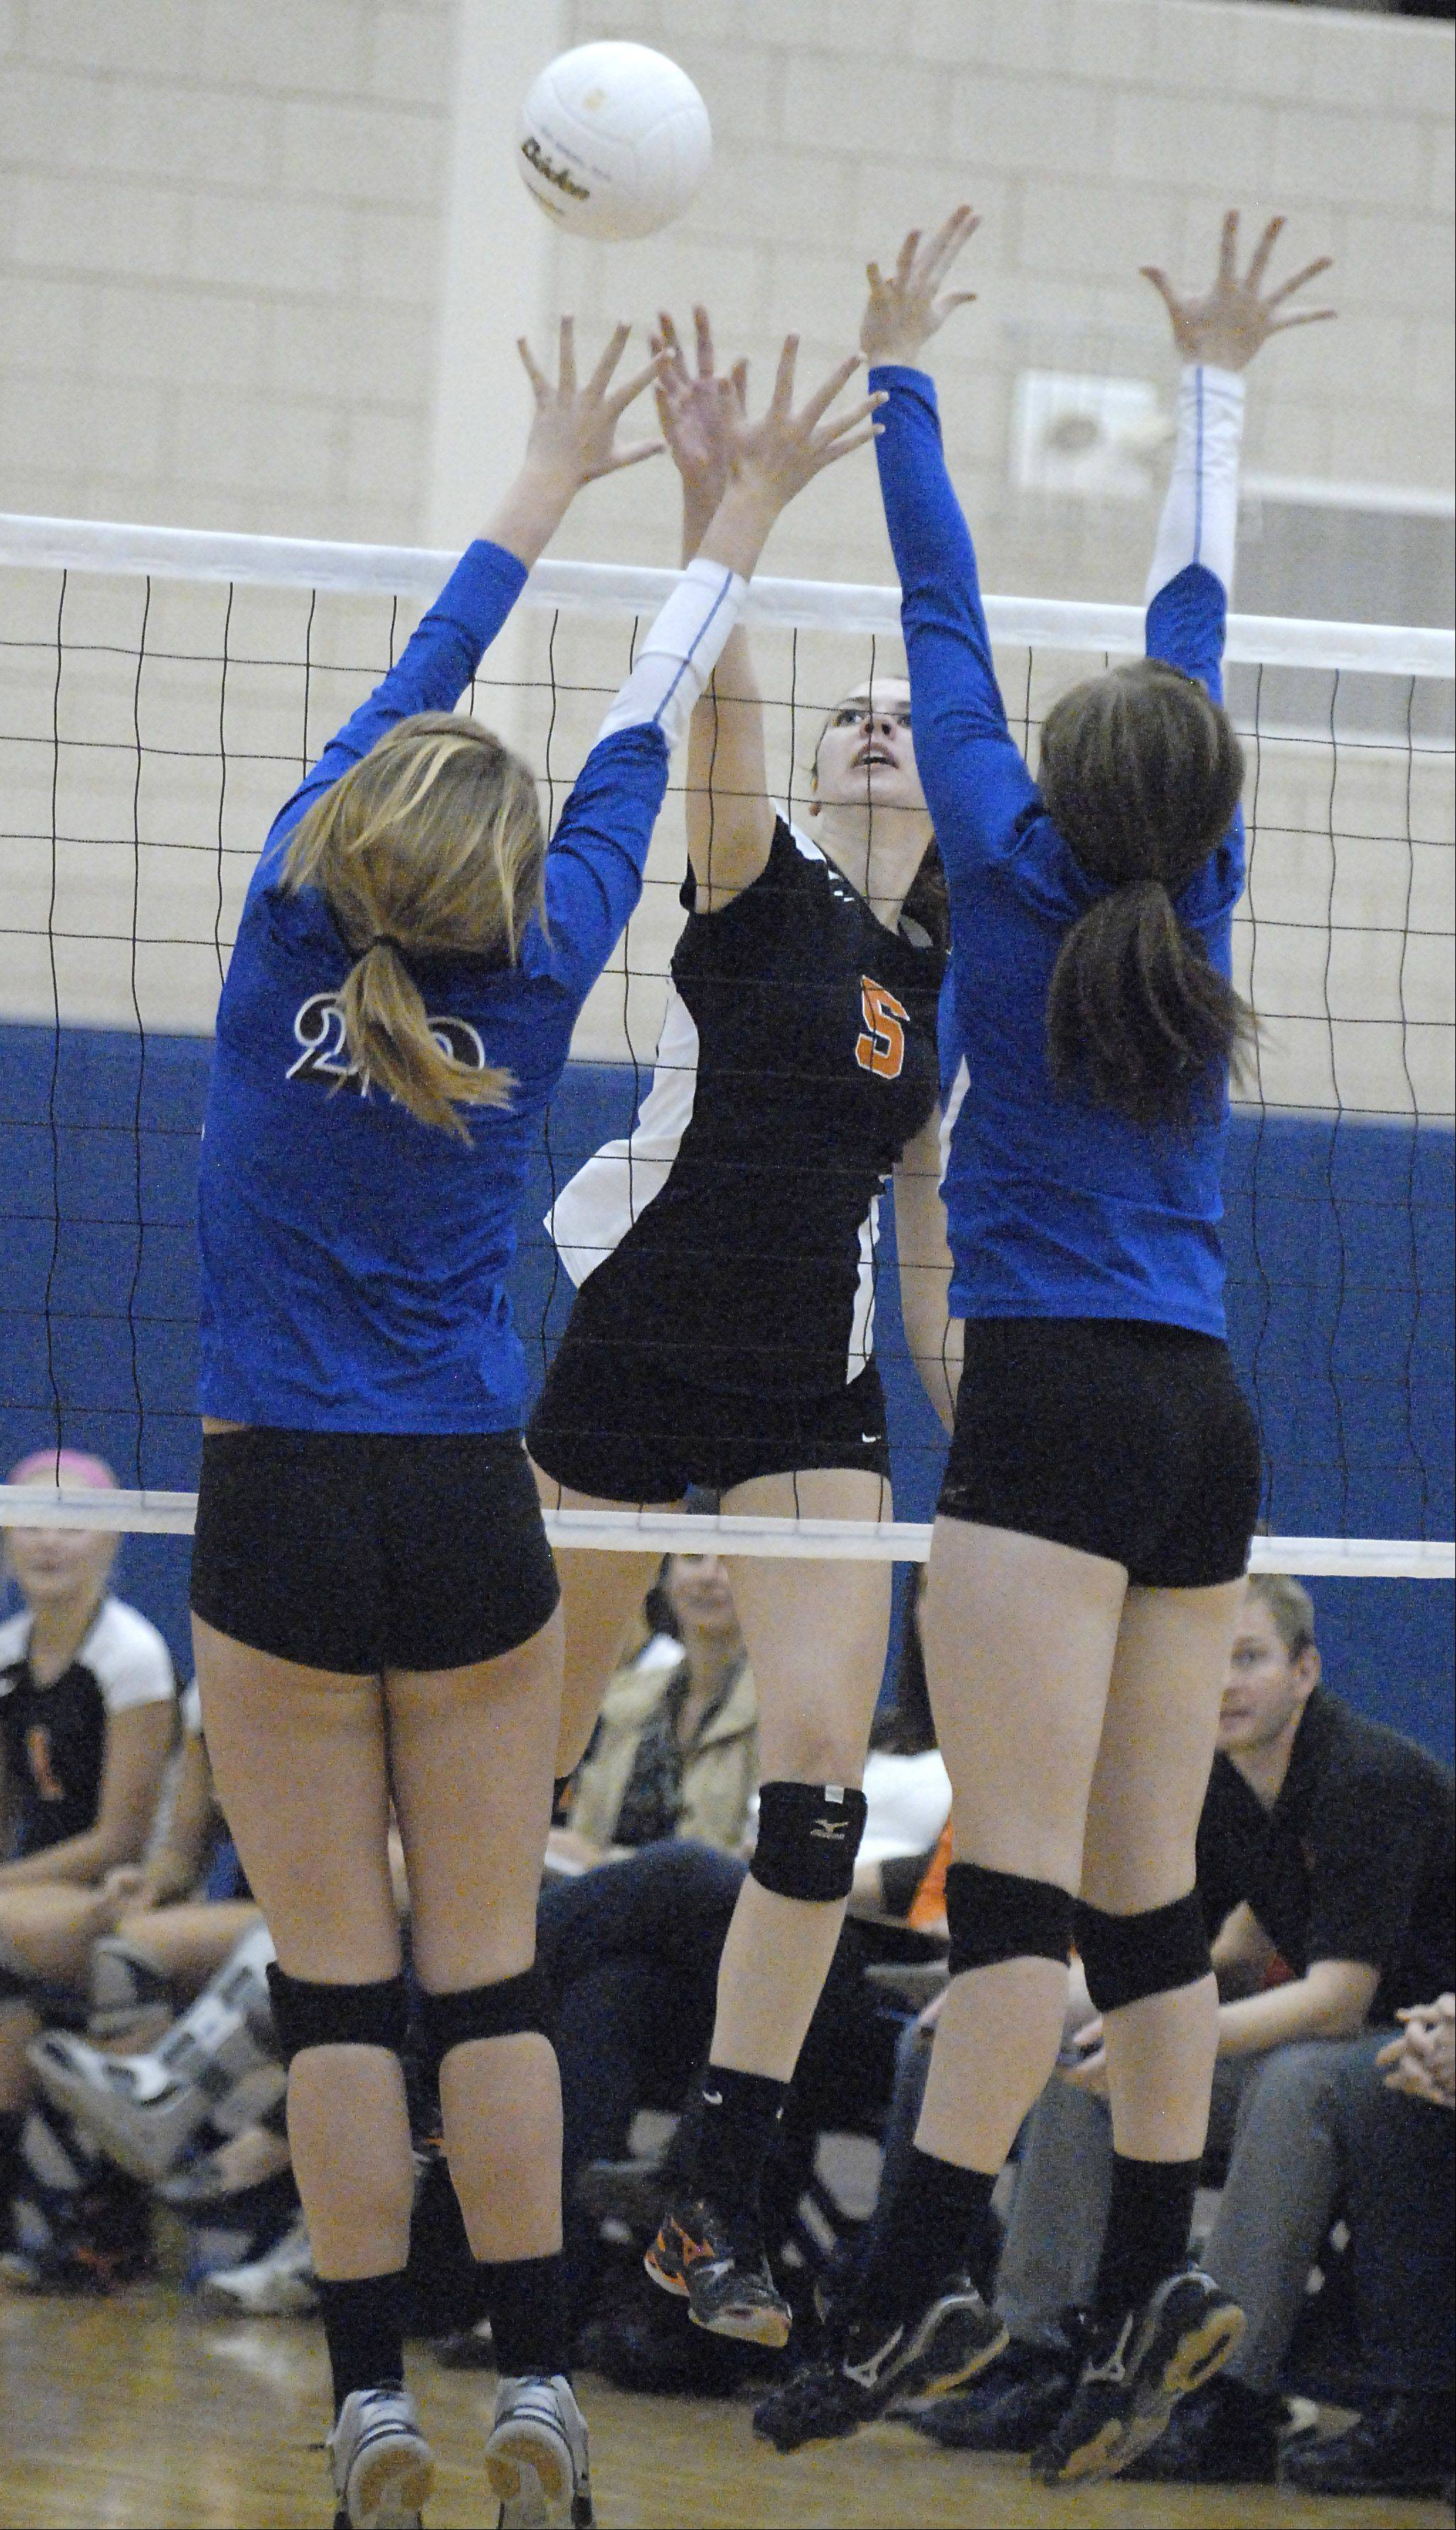 St. Charles East's Nicole Woods spikes past Geneva's Maddie Courter and Renner Burns in game three on Tuesday, October 16.